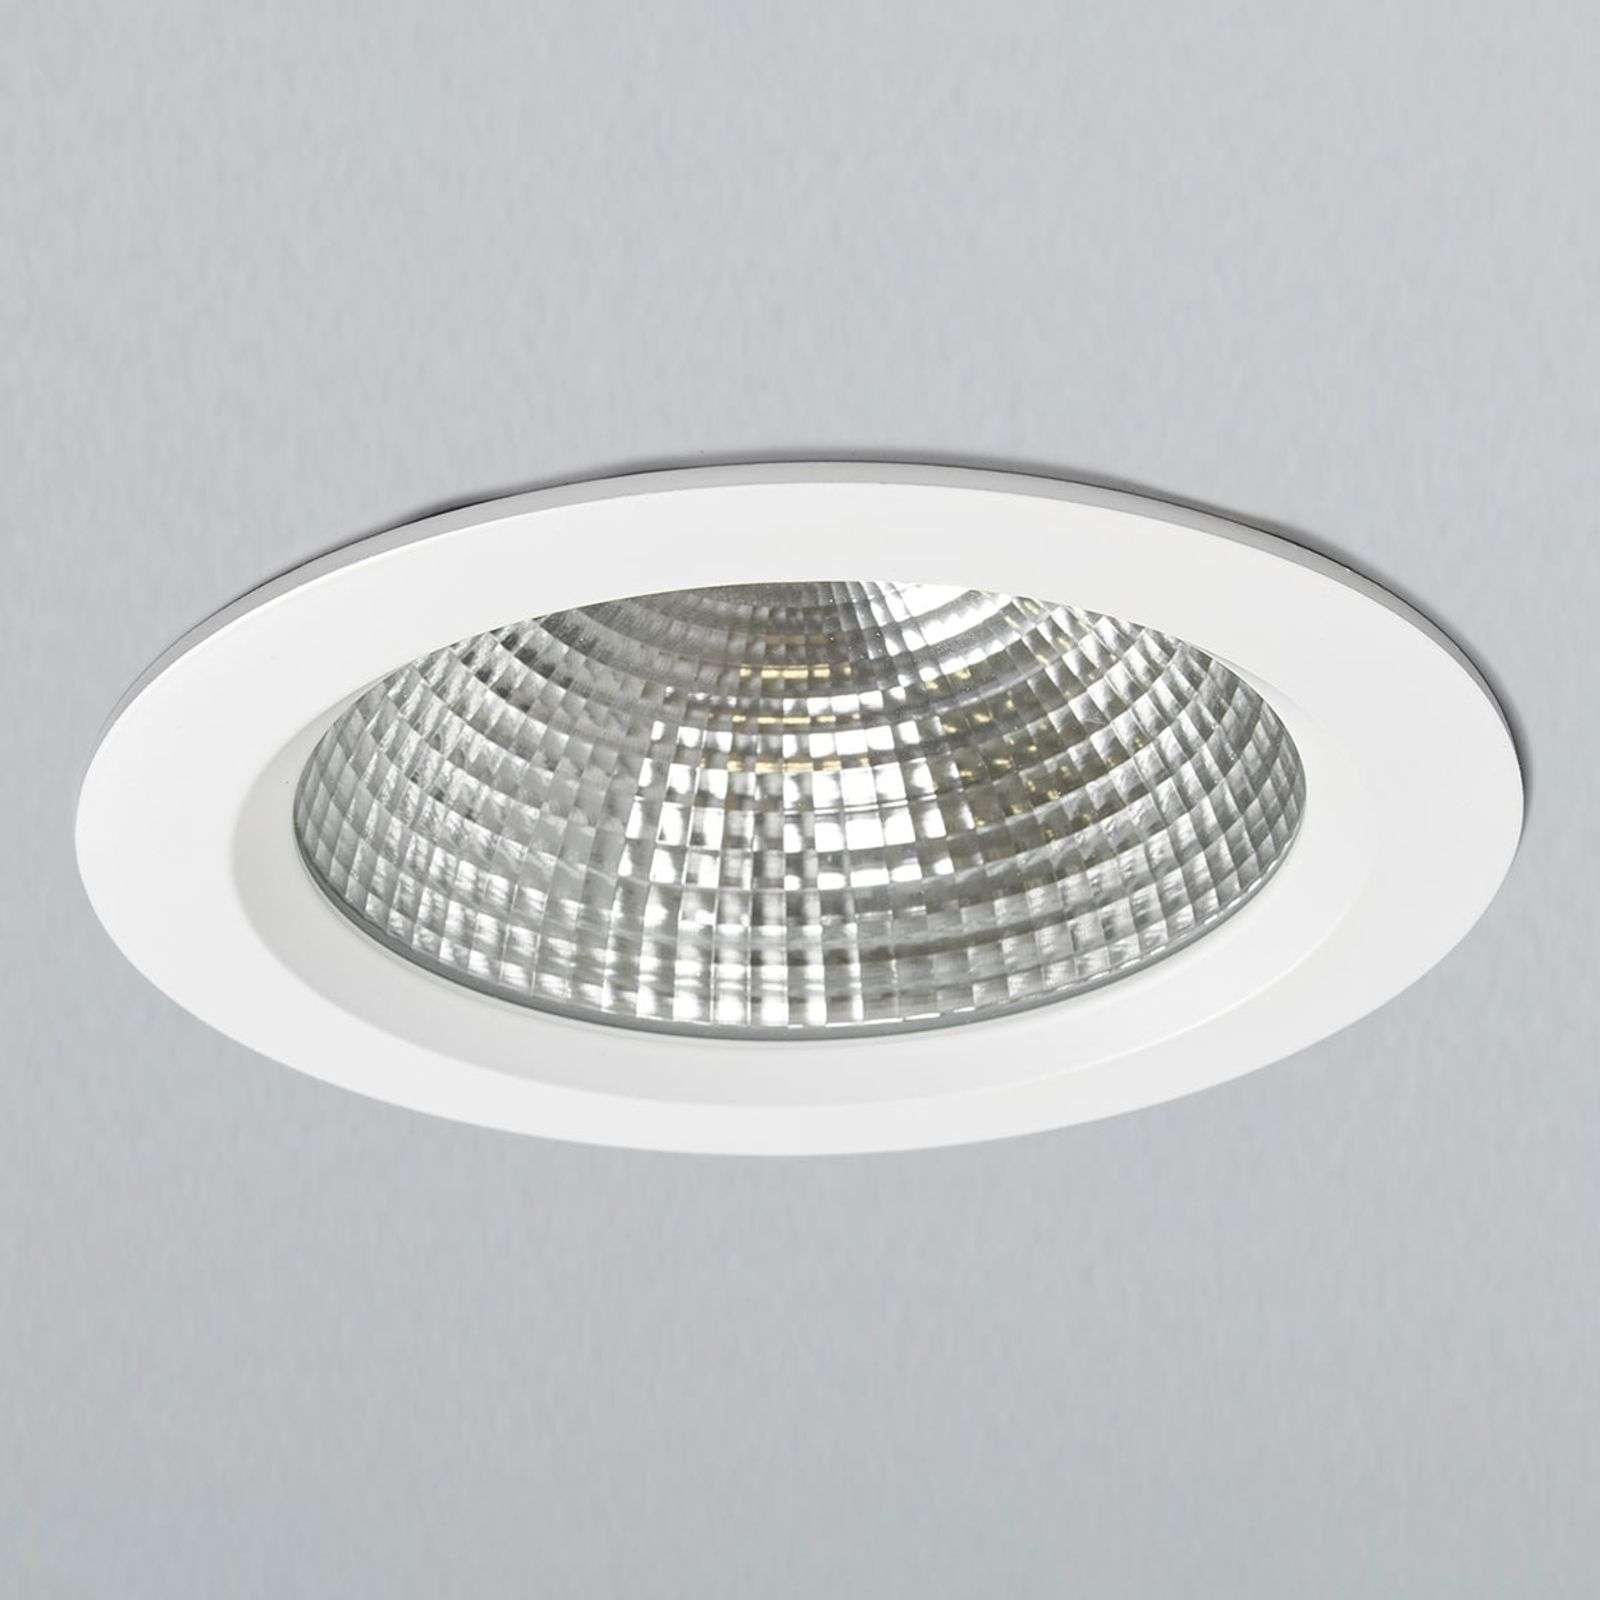 Spot LED encastrable de salle de bain Tadeus, IP65